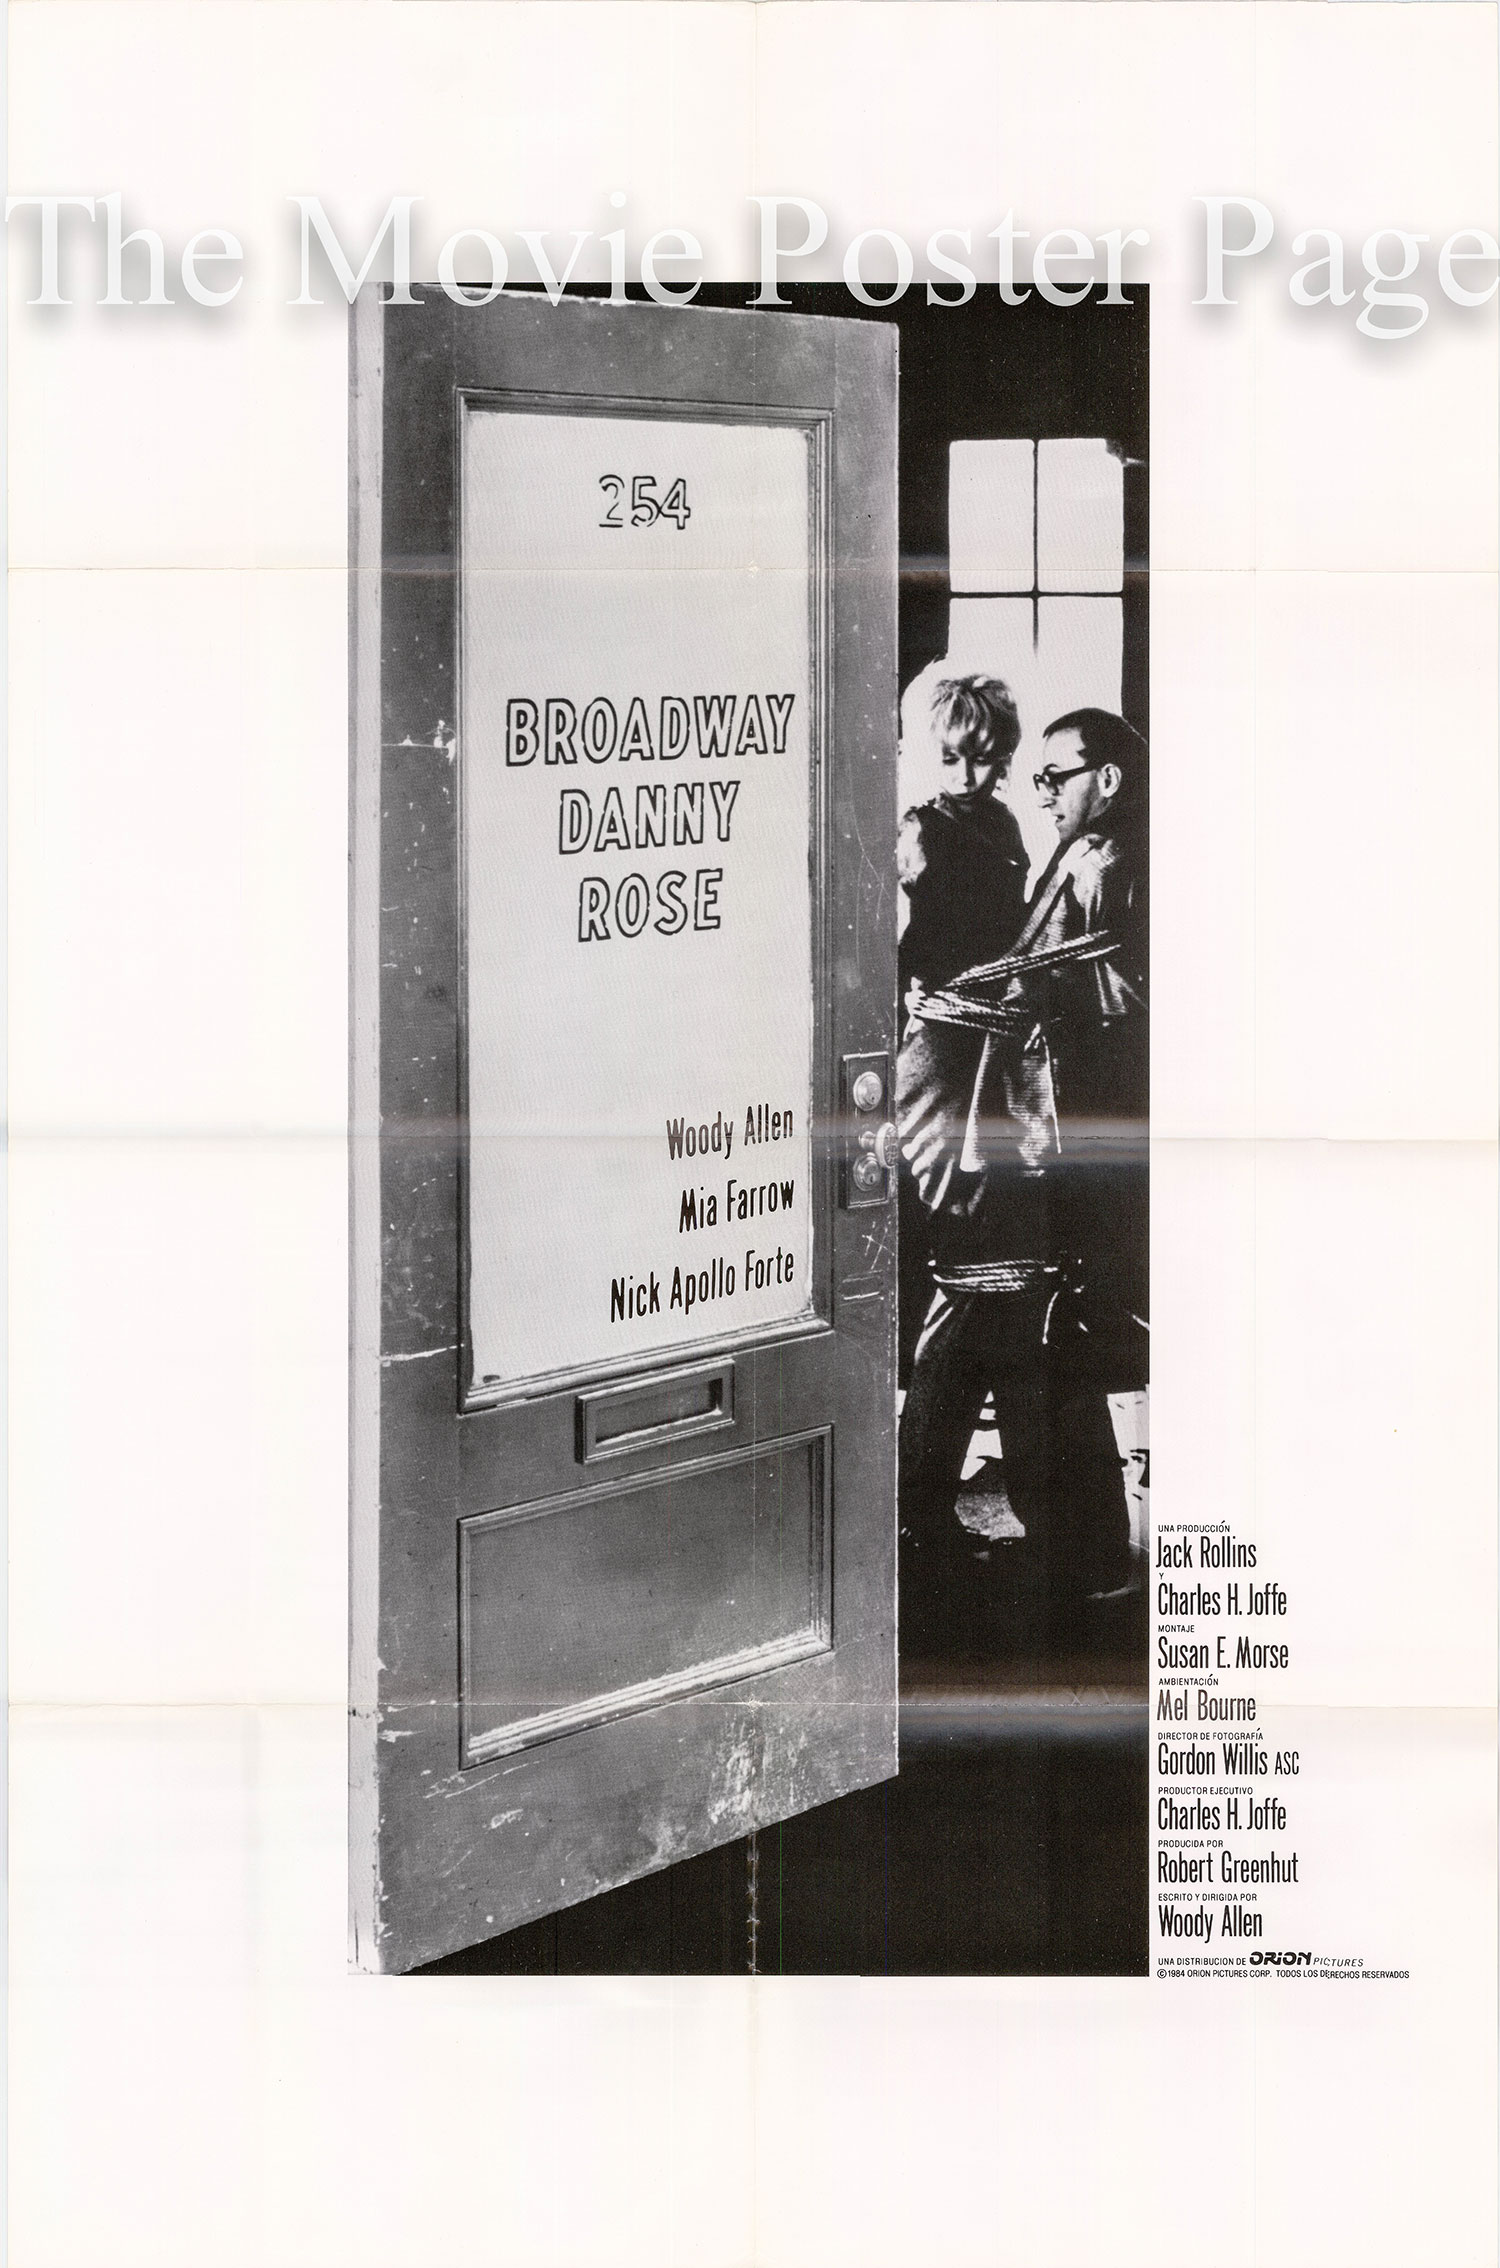 Pictured is a Spanish one-sheet poster for the 1984 Woody Allen film Broadway Danny Rose, starring Woody Allen.